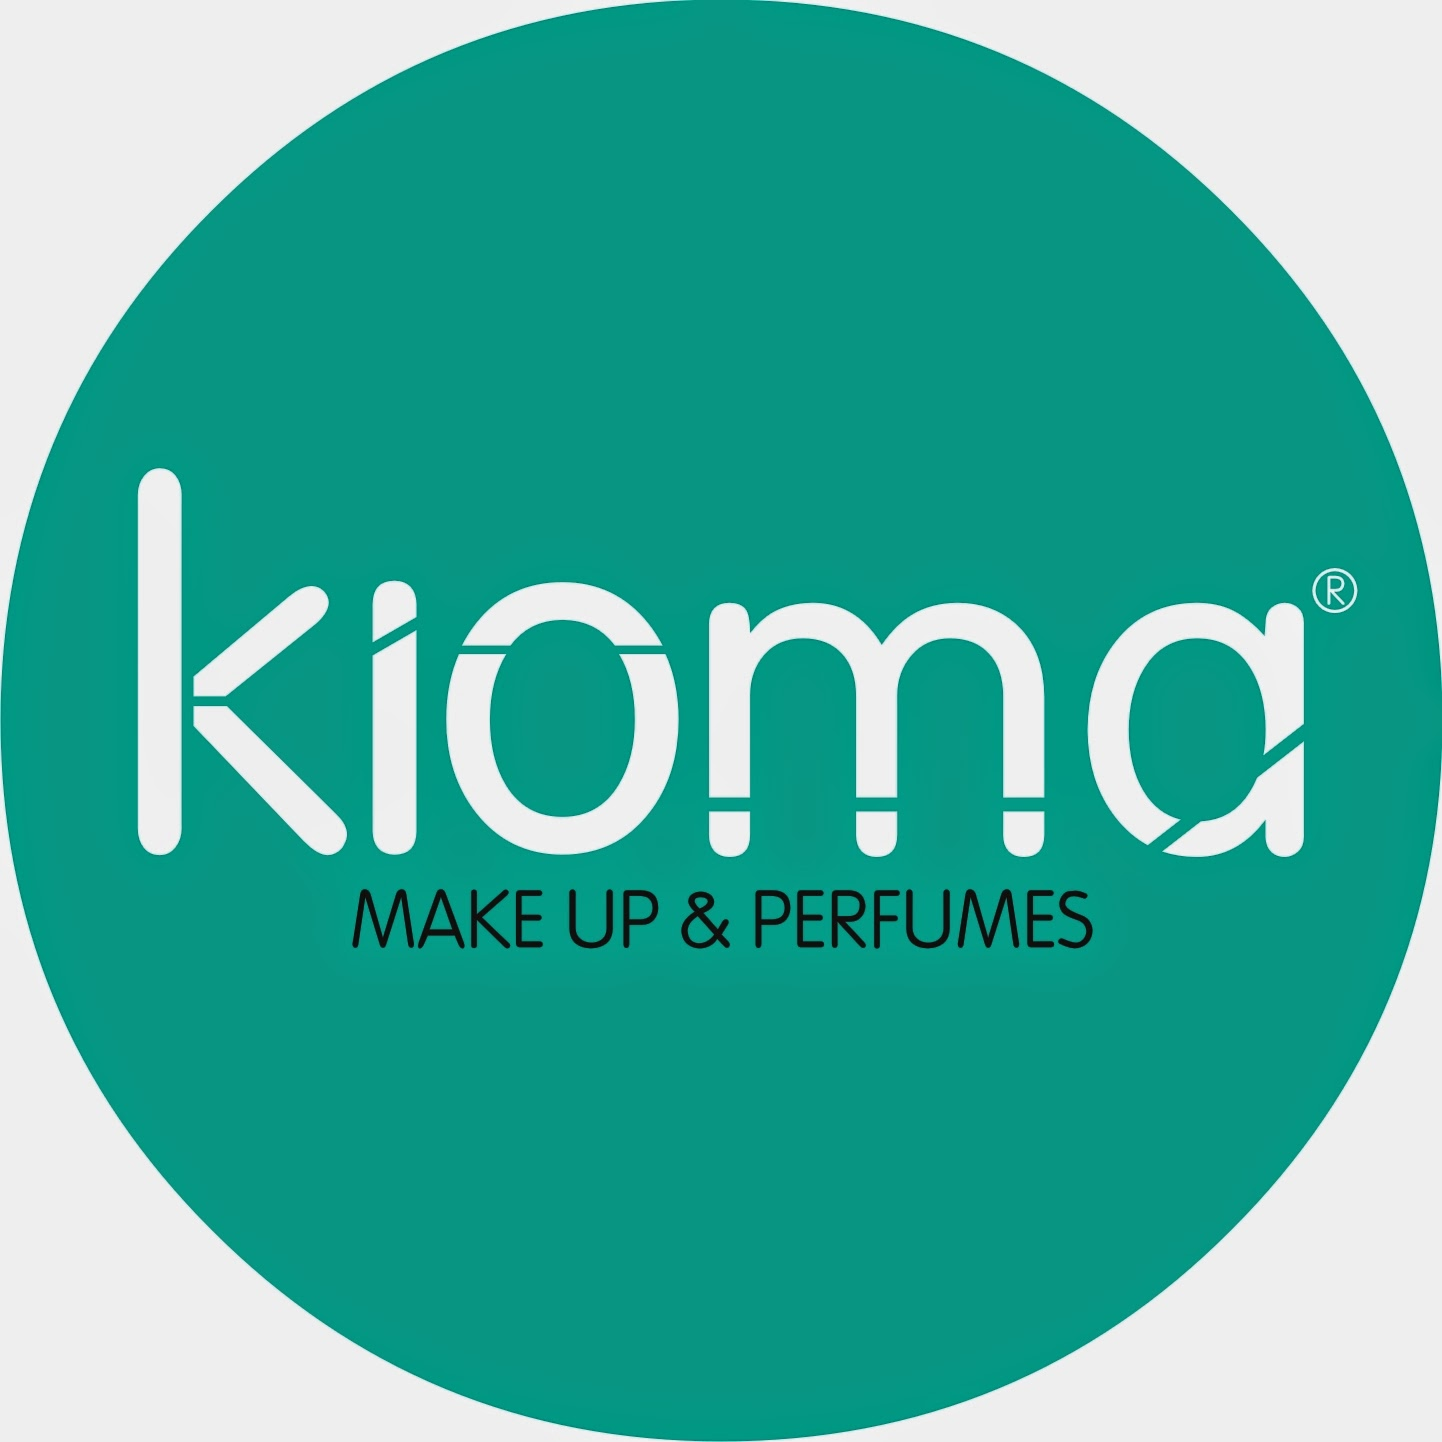 Kioma Make Up & Perfumes • ઇઉ